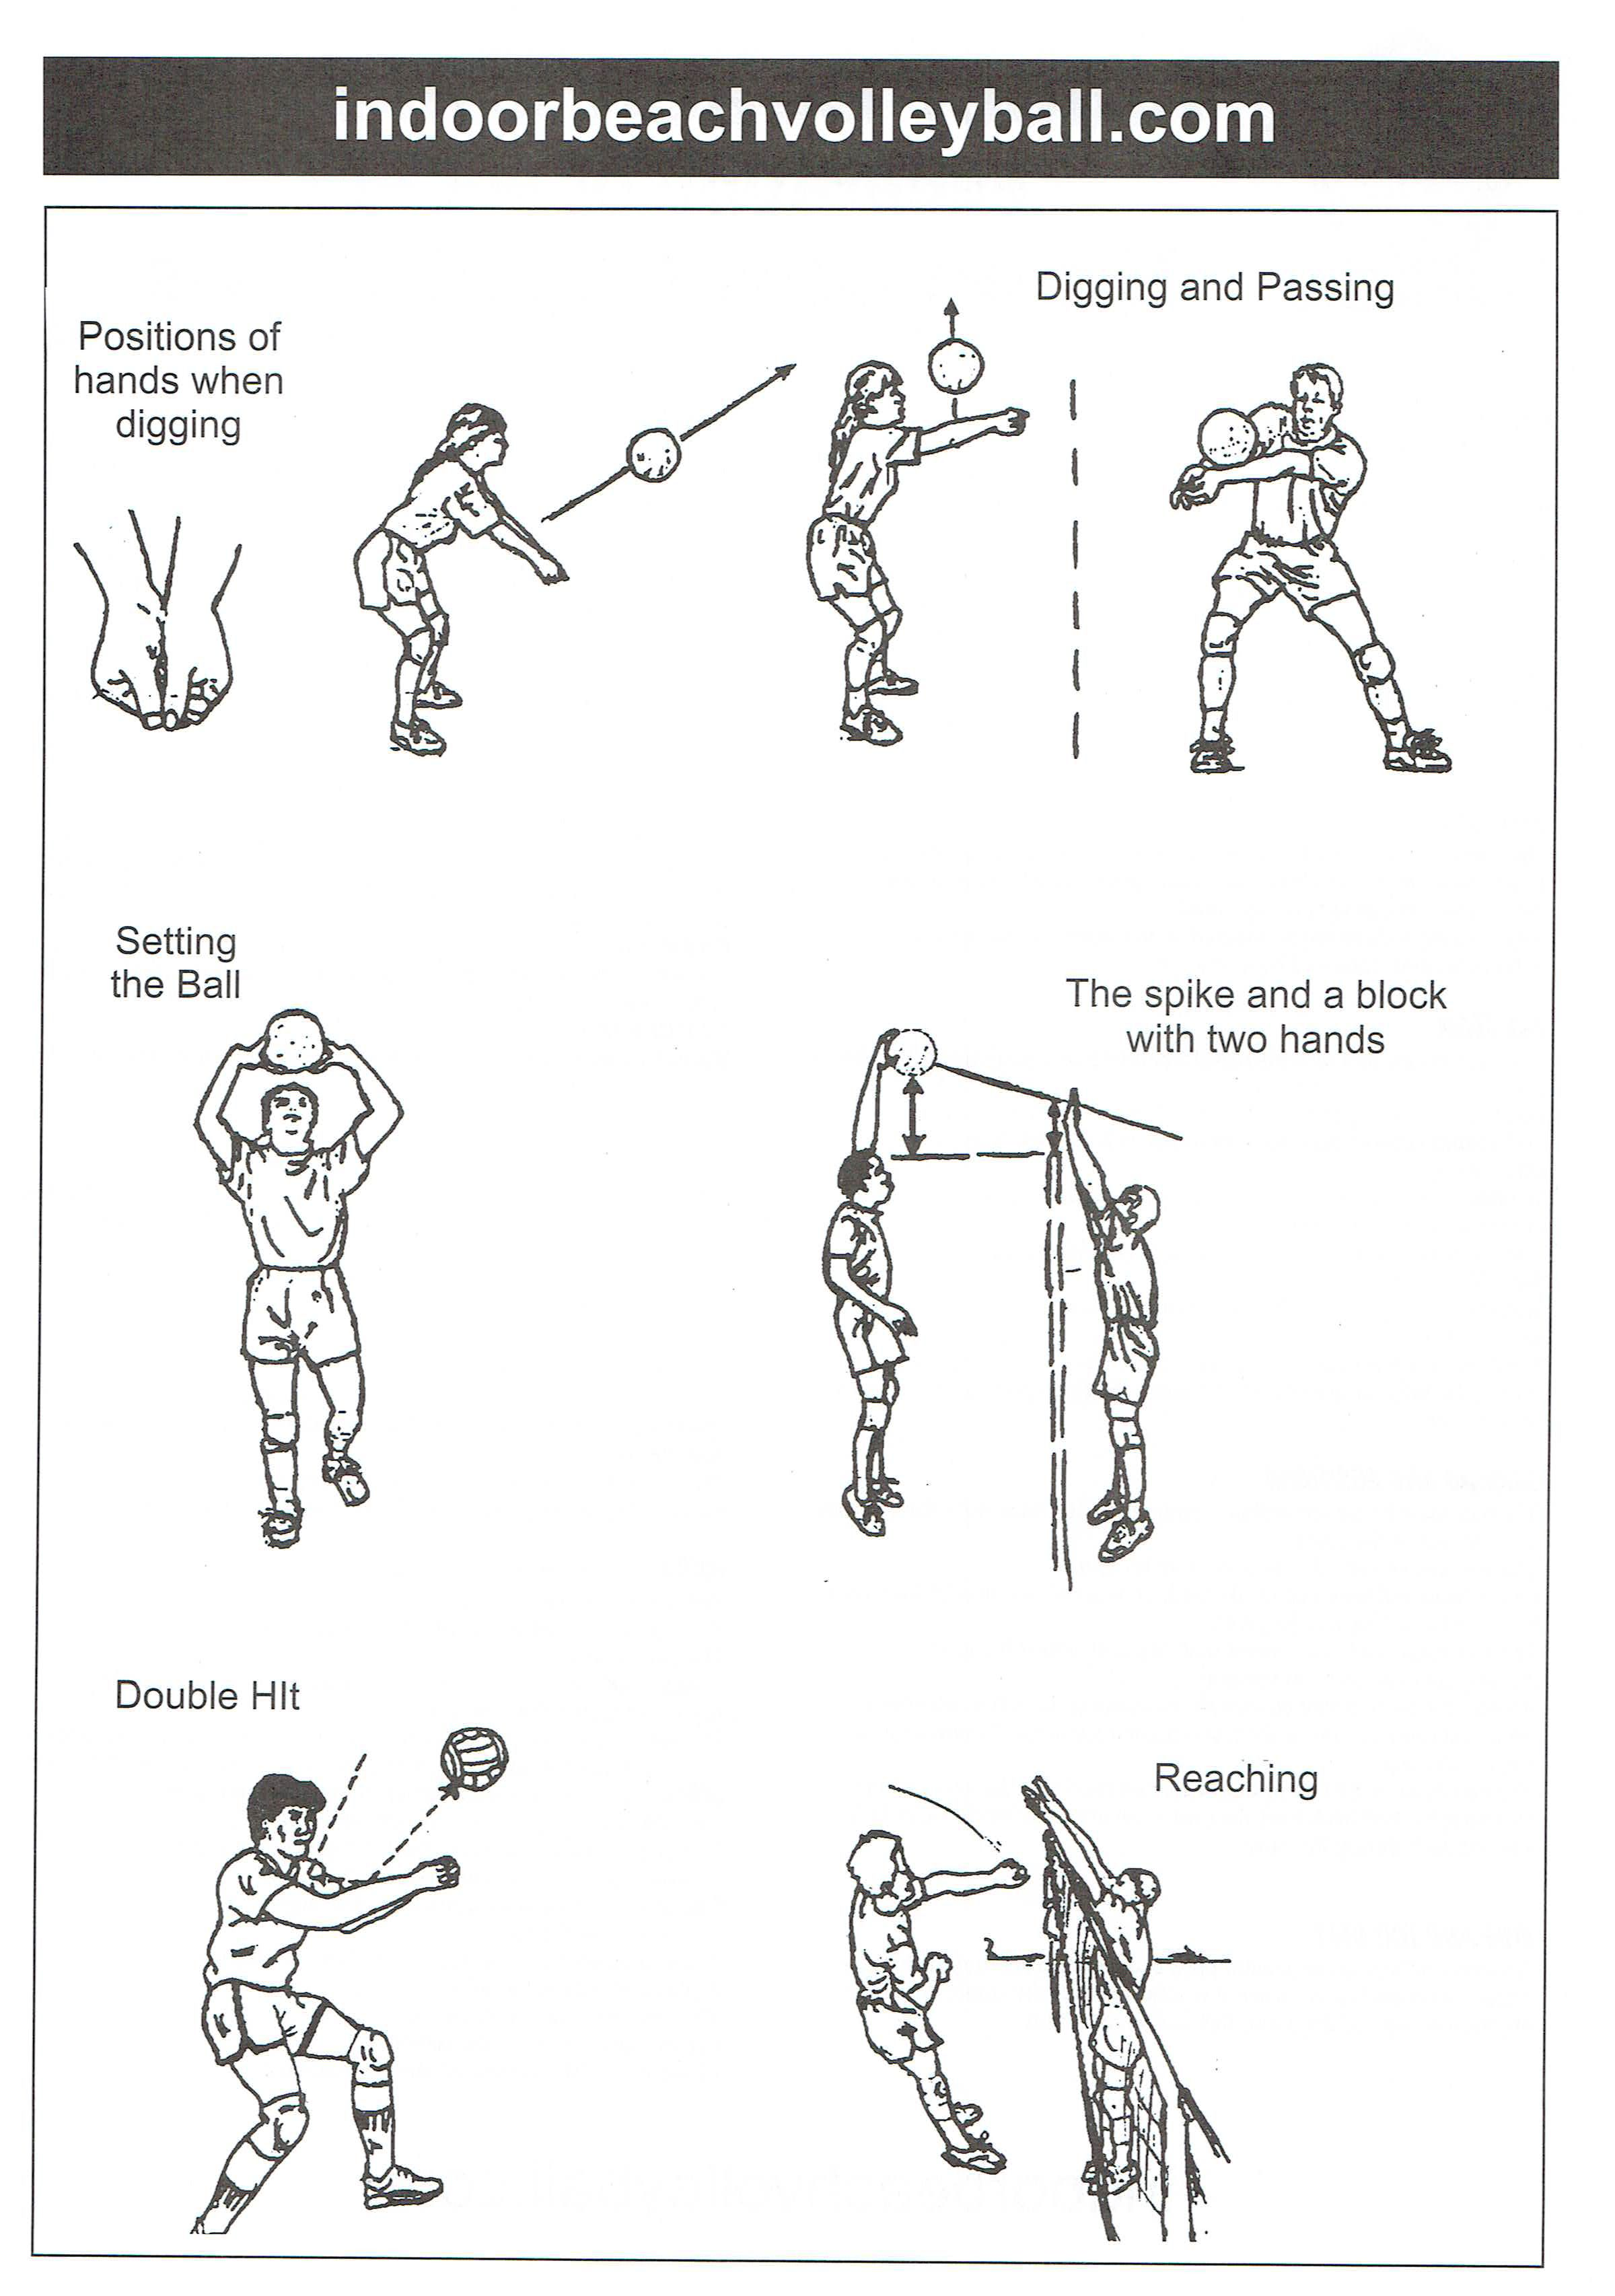 volleyball positions diagram 6 2 2003 s10 stereo wiring rules and regulations 1 001 jpg 24003412